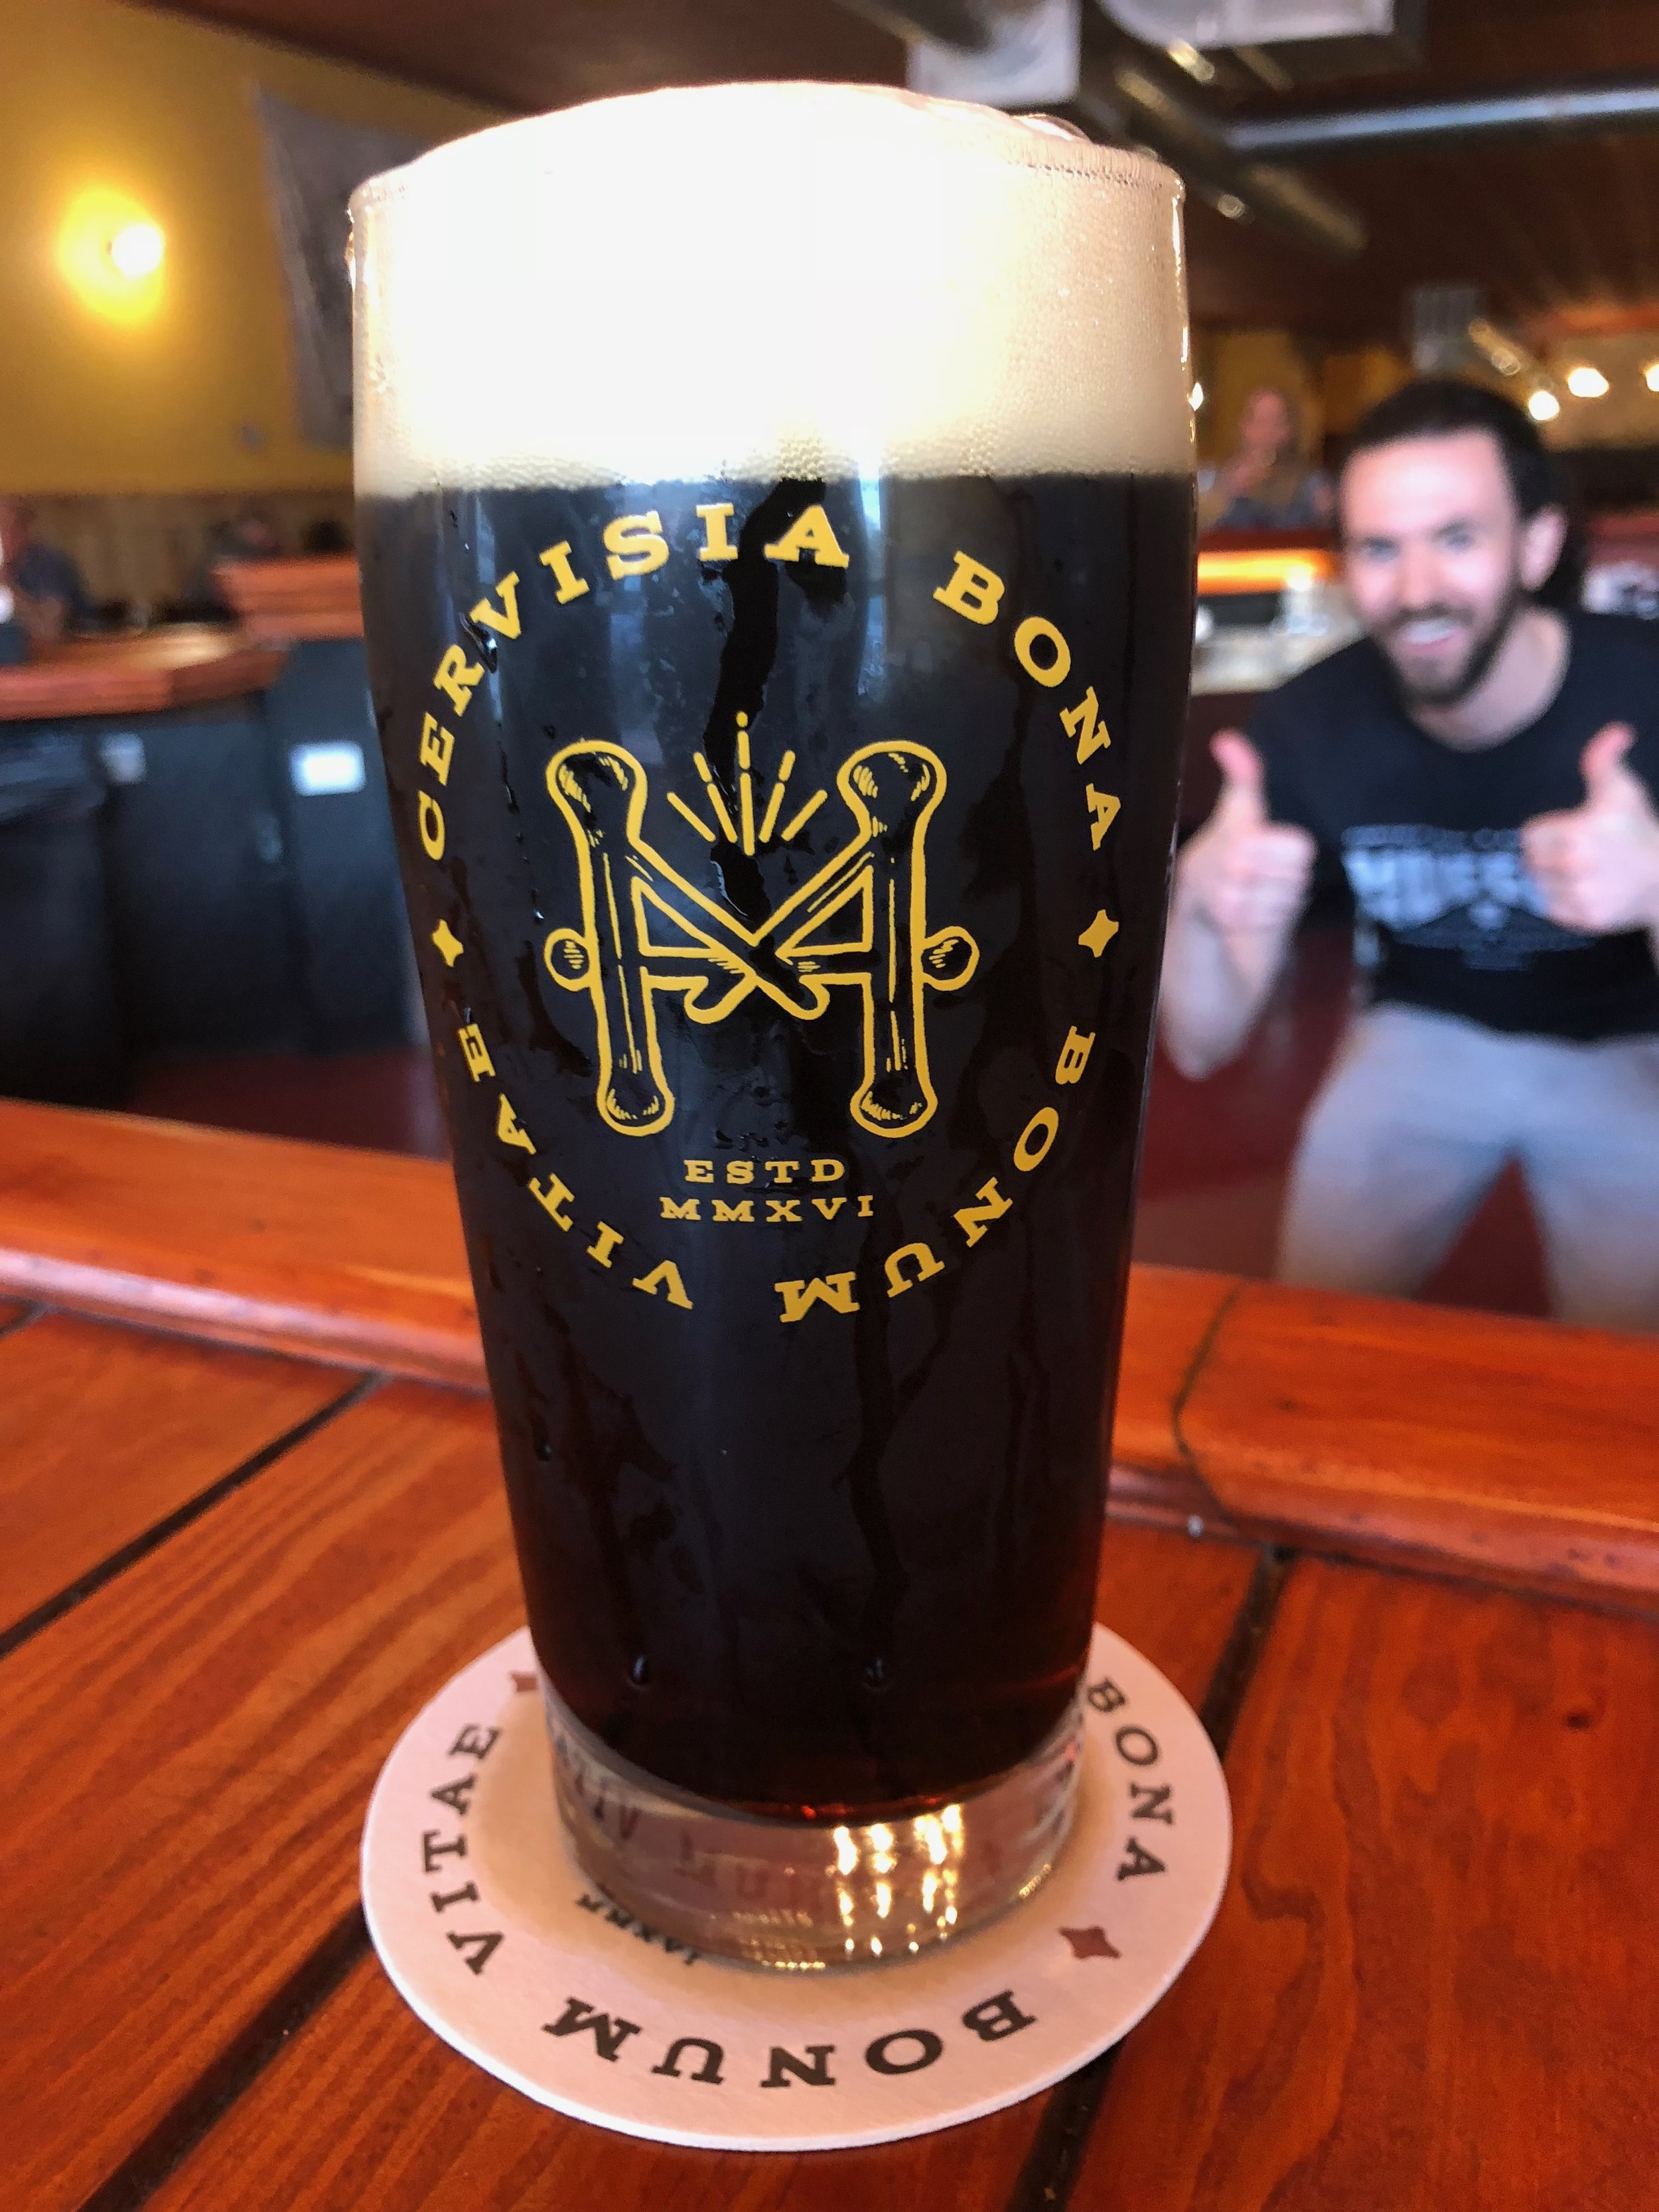 - Amor Fati Ruby Porter 5.3% ABV 26 IBUChocolate malt and double roasted sweet crystal malts. Late addition Golding hops. Love of Fate is complex and embracing.